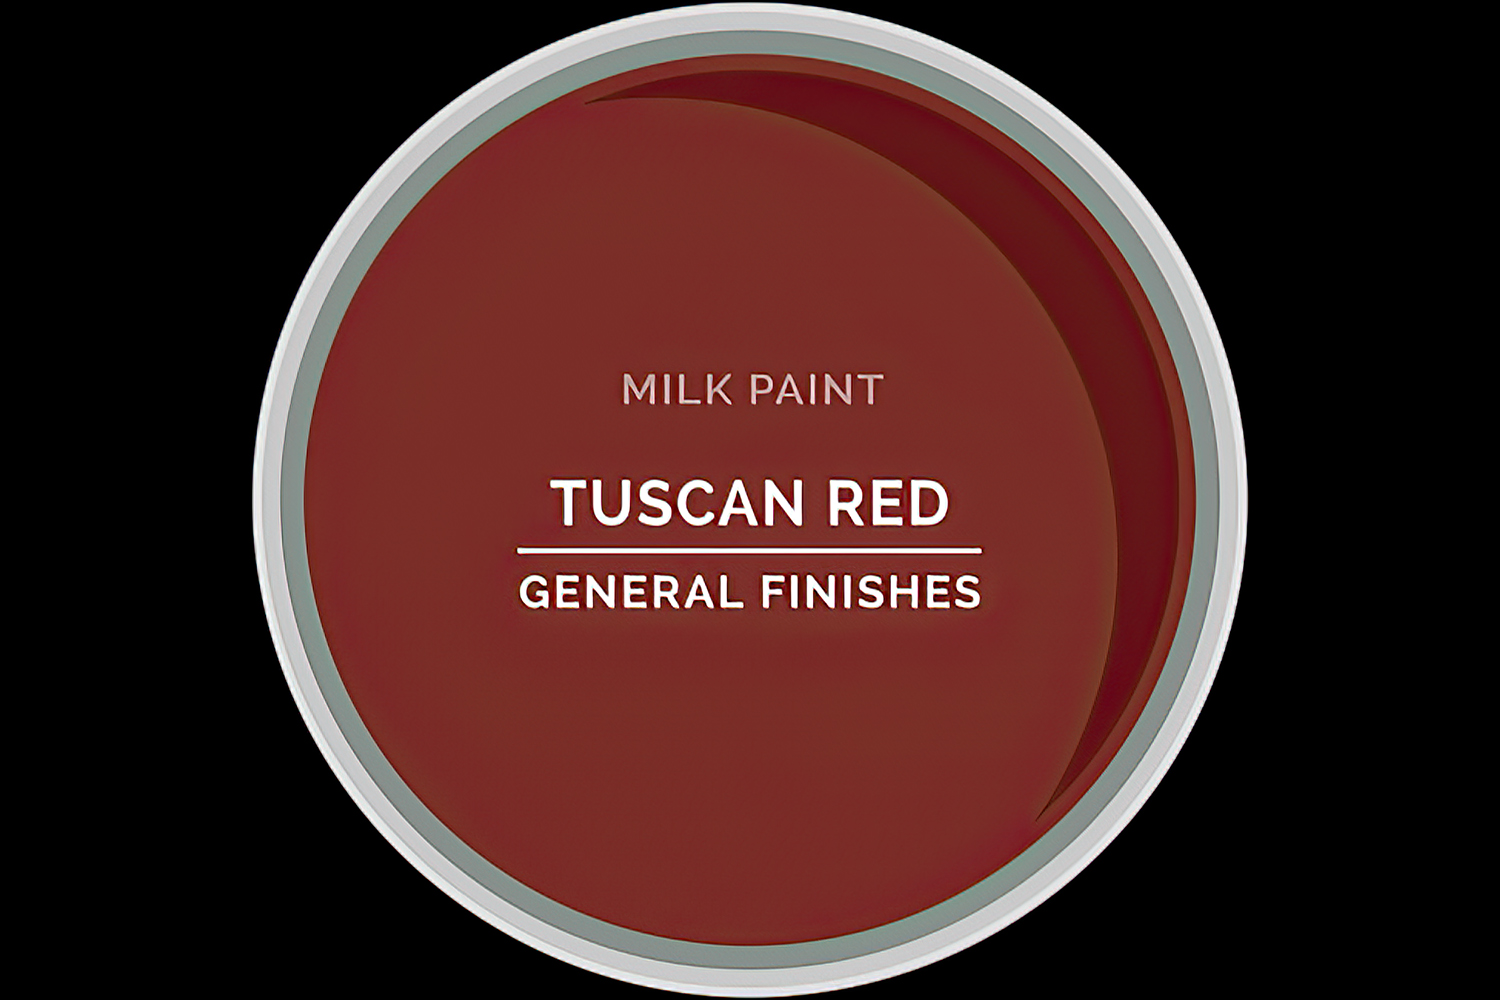 Color Chip Milk Paint TUSCAN RED General Finishes Copy